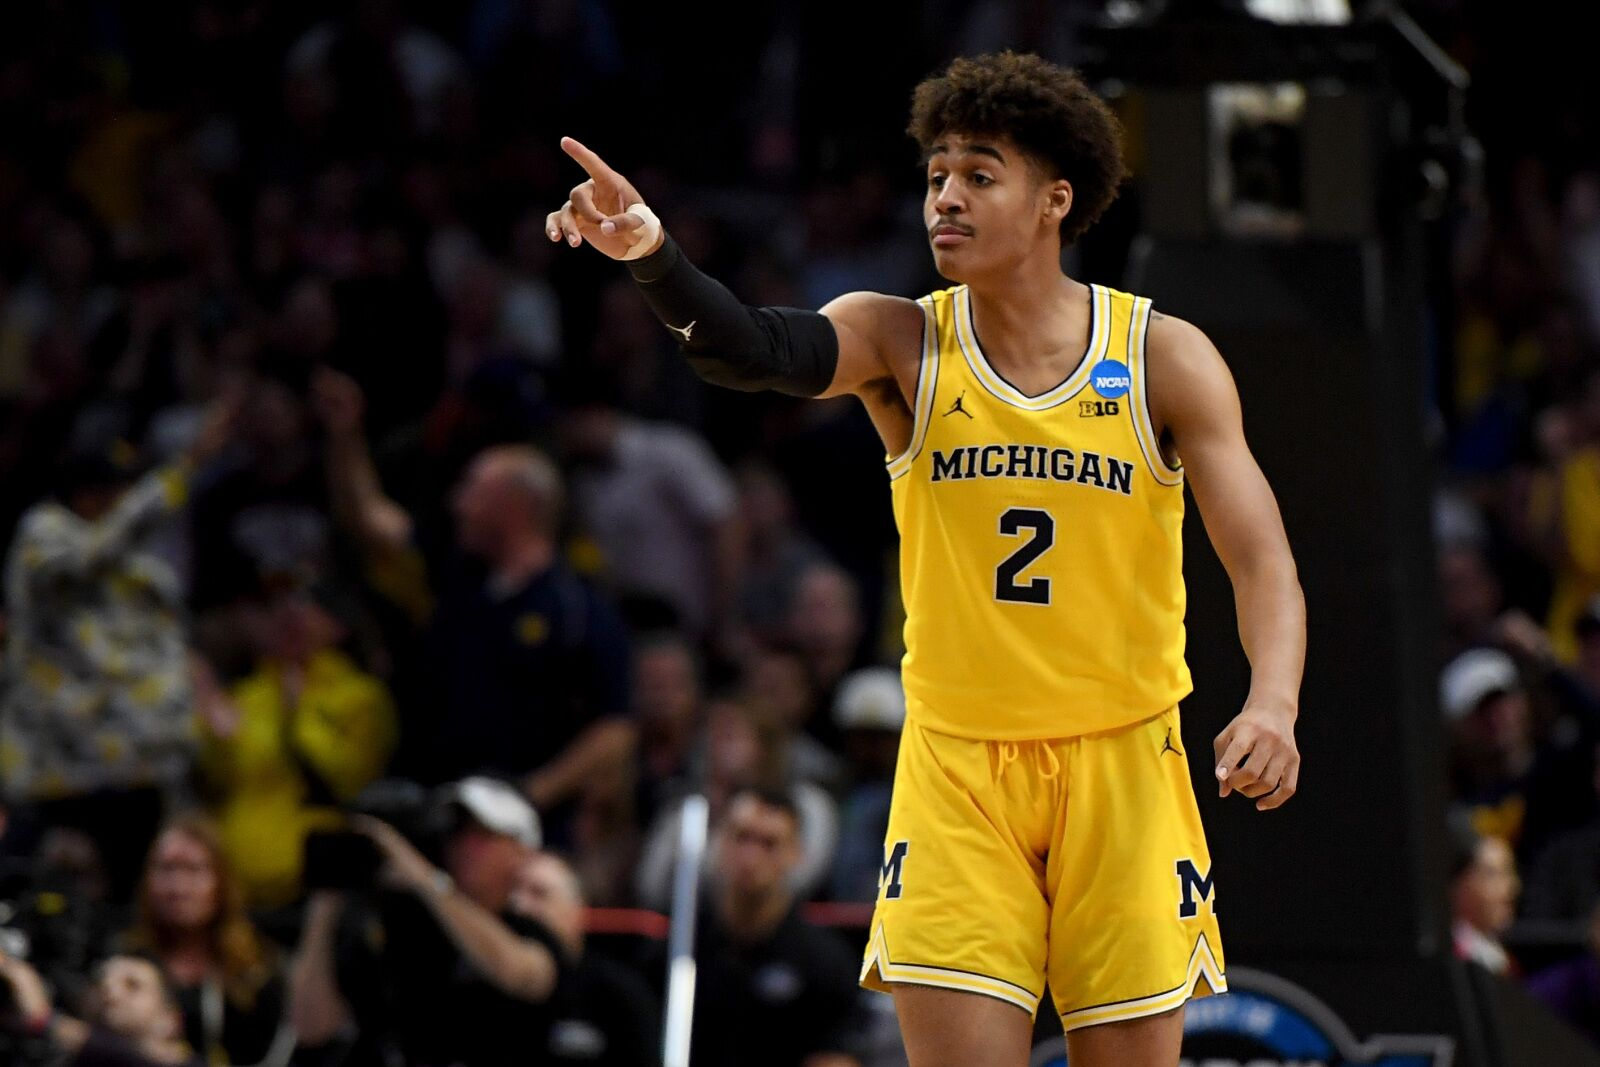 Michigan Basketball: Wolverines make top 3 for top guard Jaden Springer